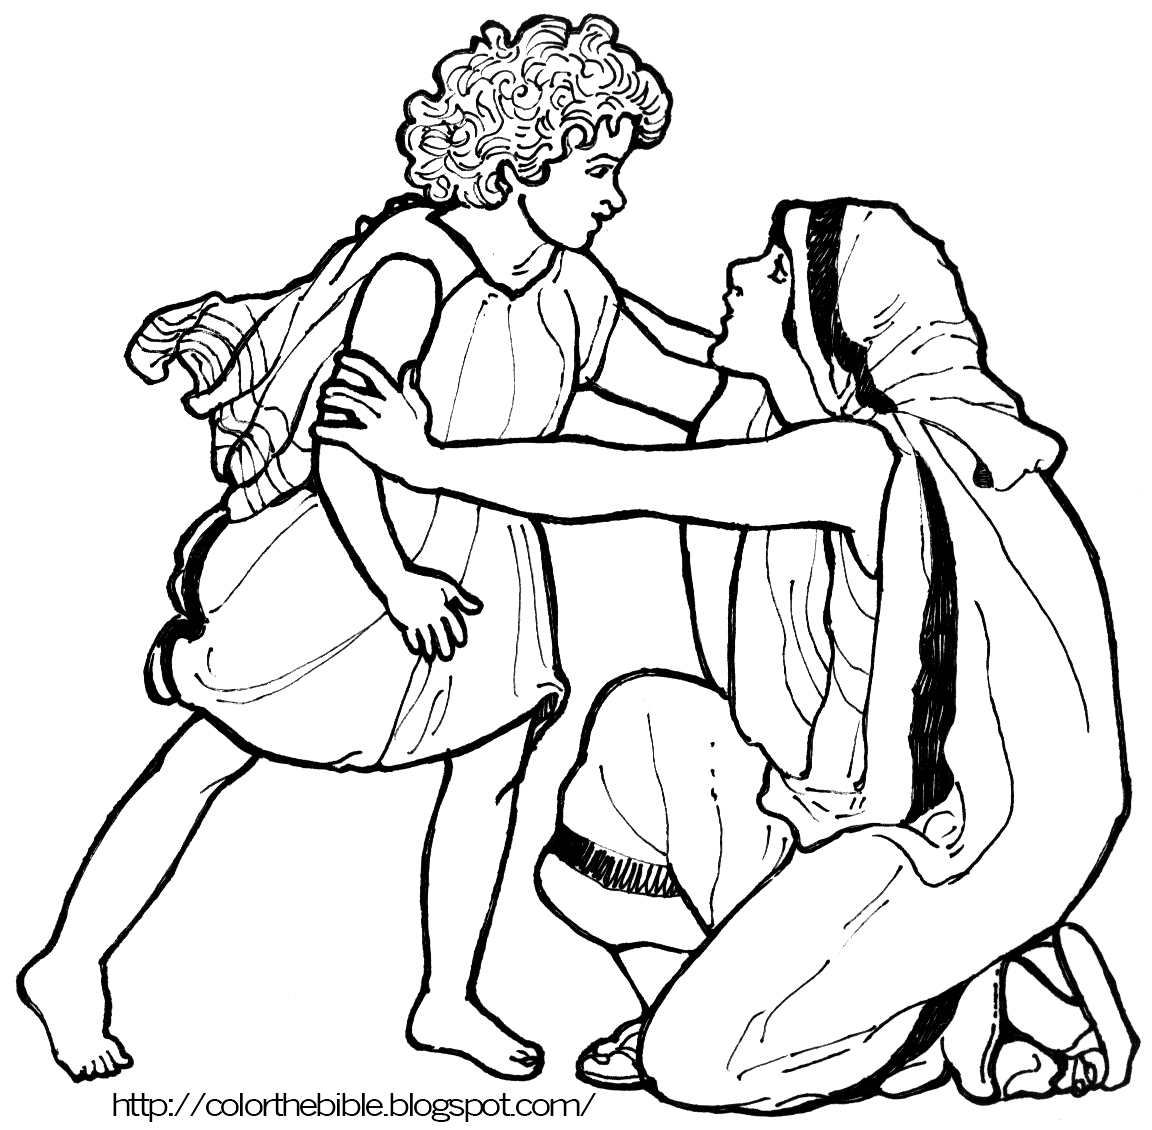 Coloring sheet hannah and samuel - Description Of Coloring Page Samuel Runs To His Mother To Say One Last Goodbye She Brings Him A New Set Of Cloths Every Year